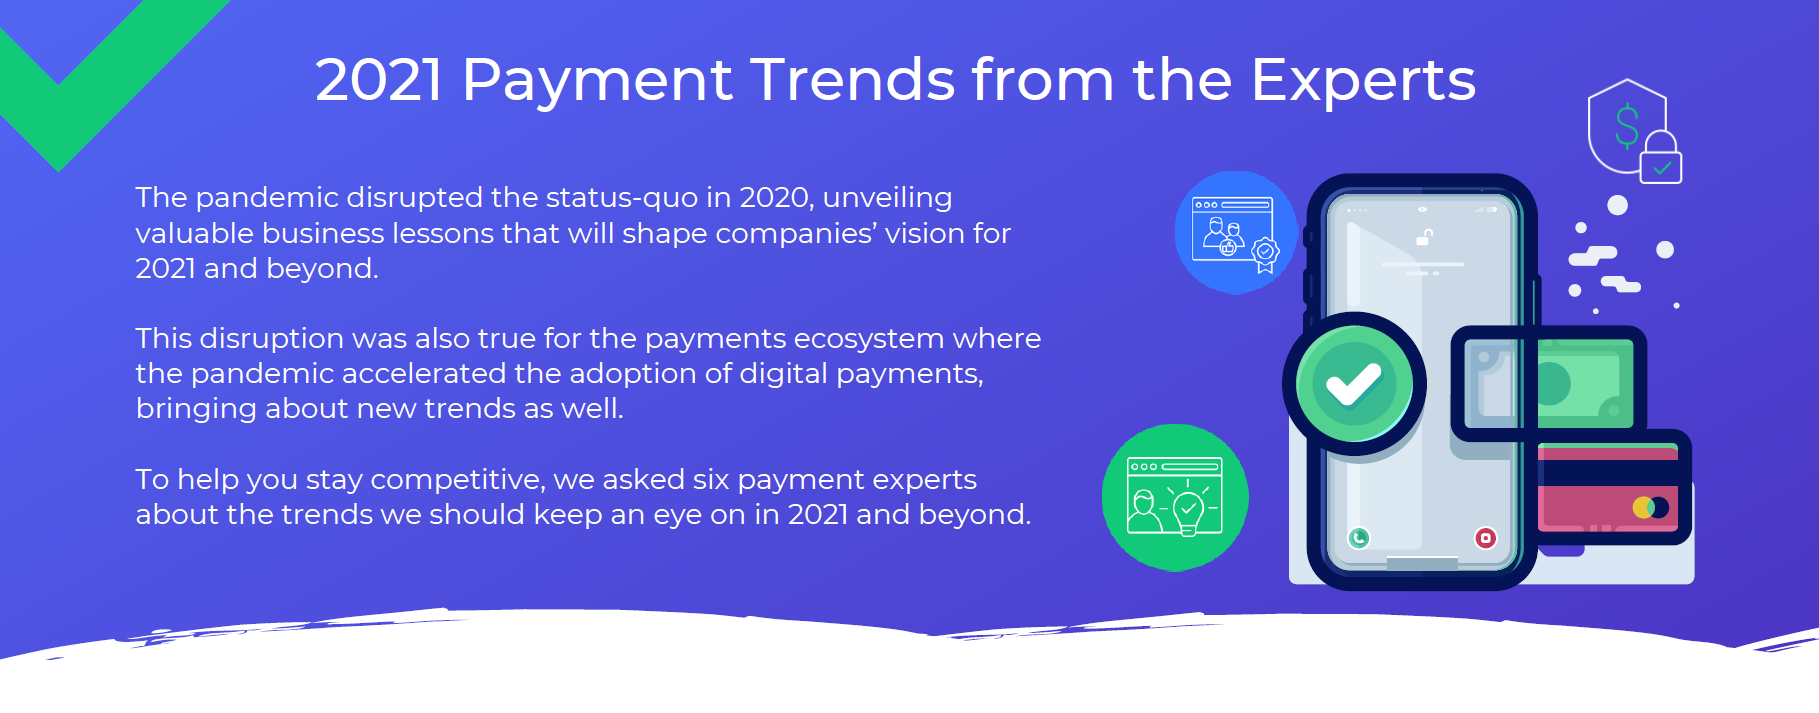 2021 Payment Trends from the Experts Infographic